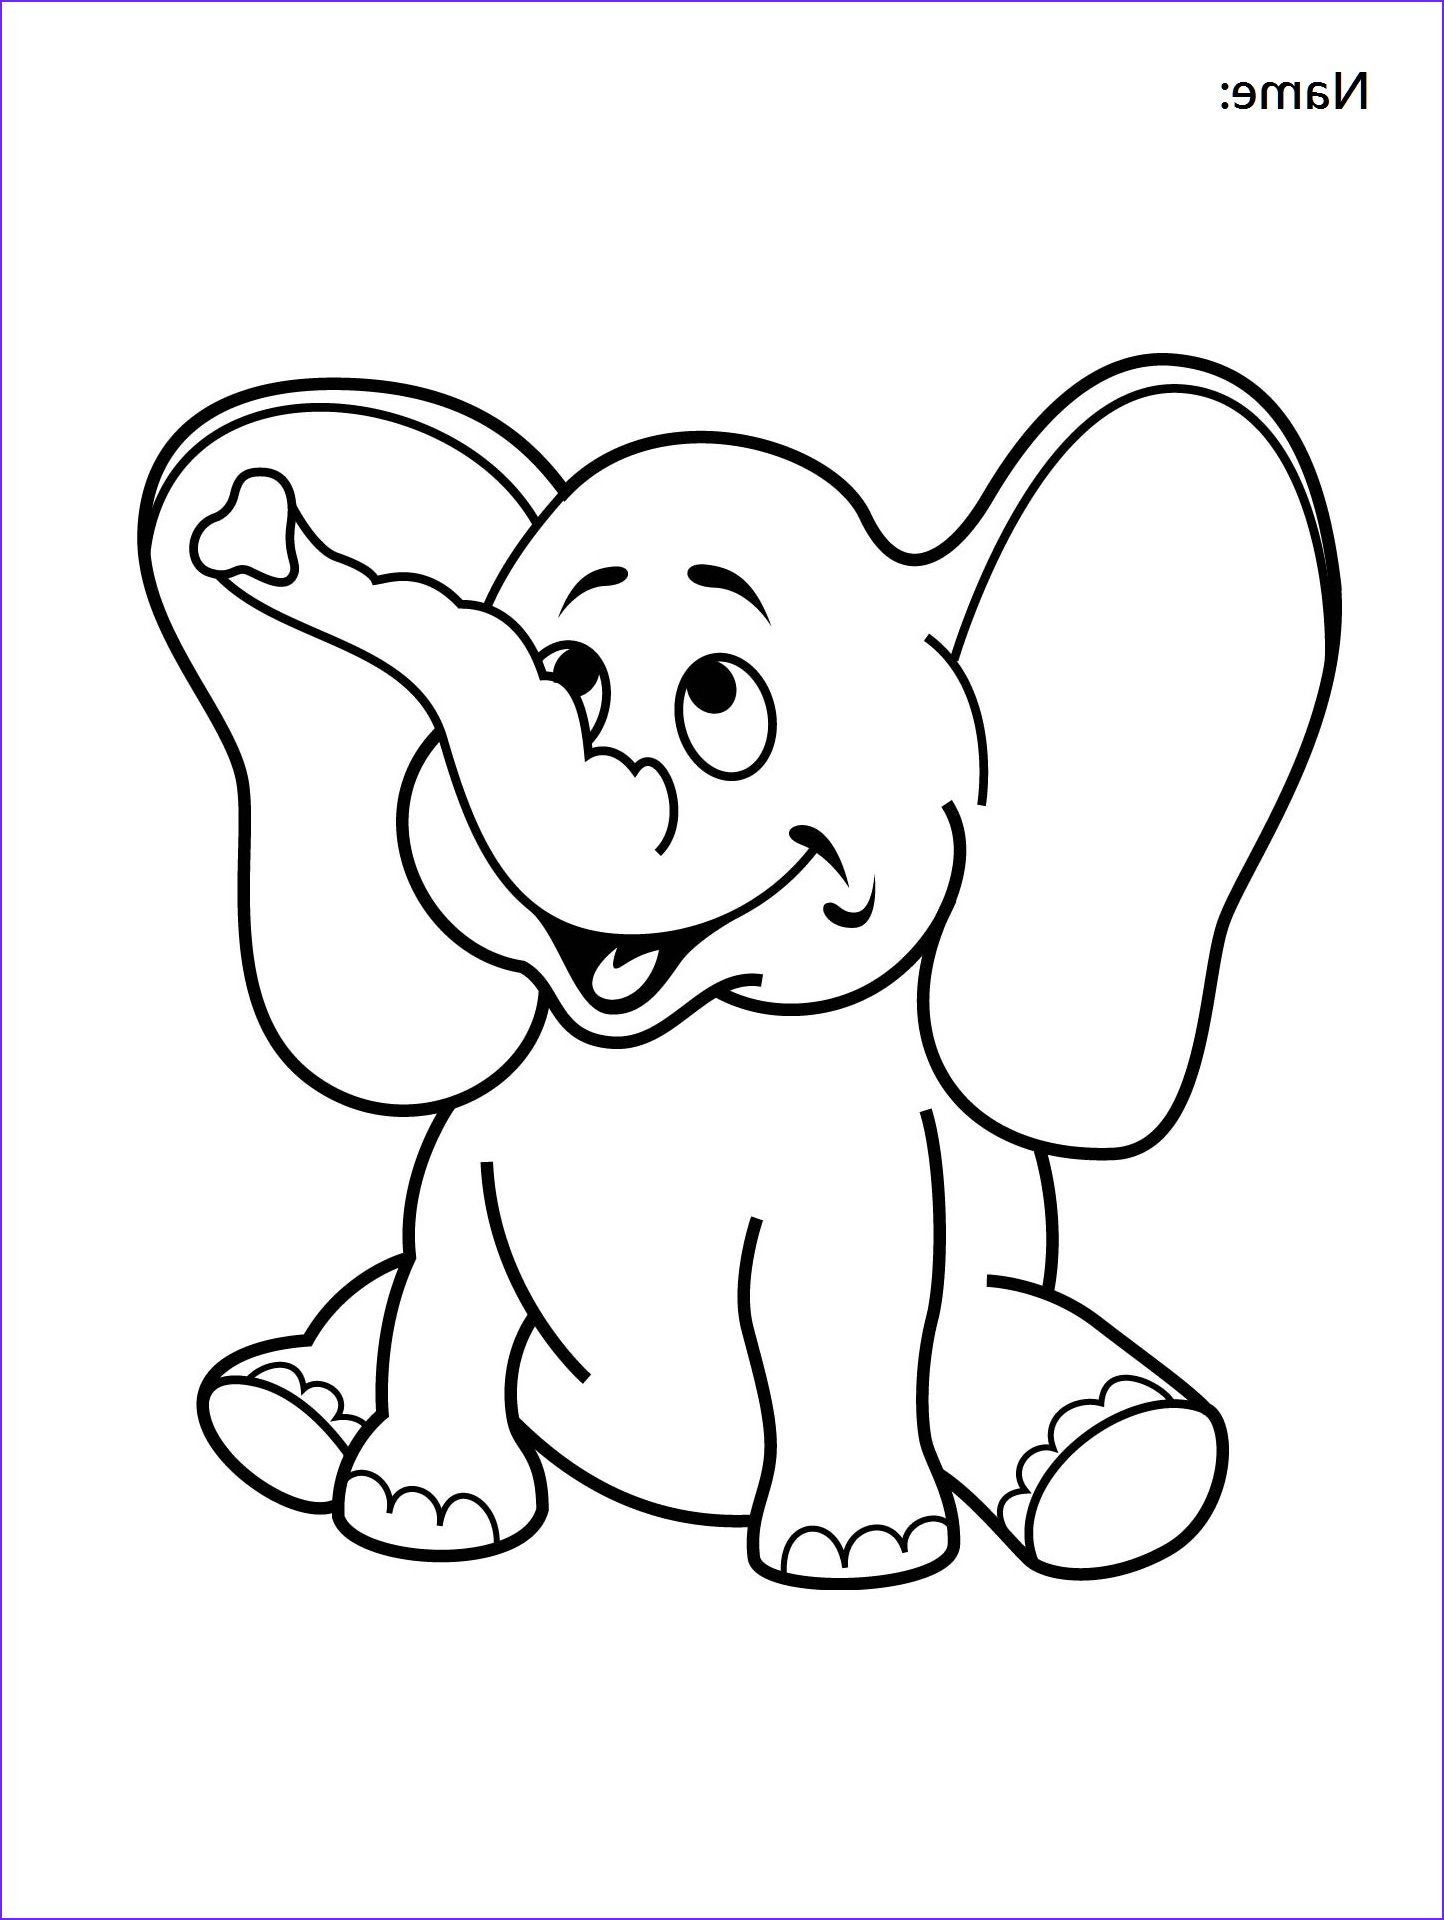 Coloring Pages for 4 Year Olds Elegant Image 4 Year Old Worksheets Printable